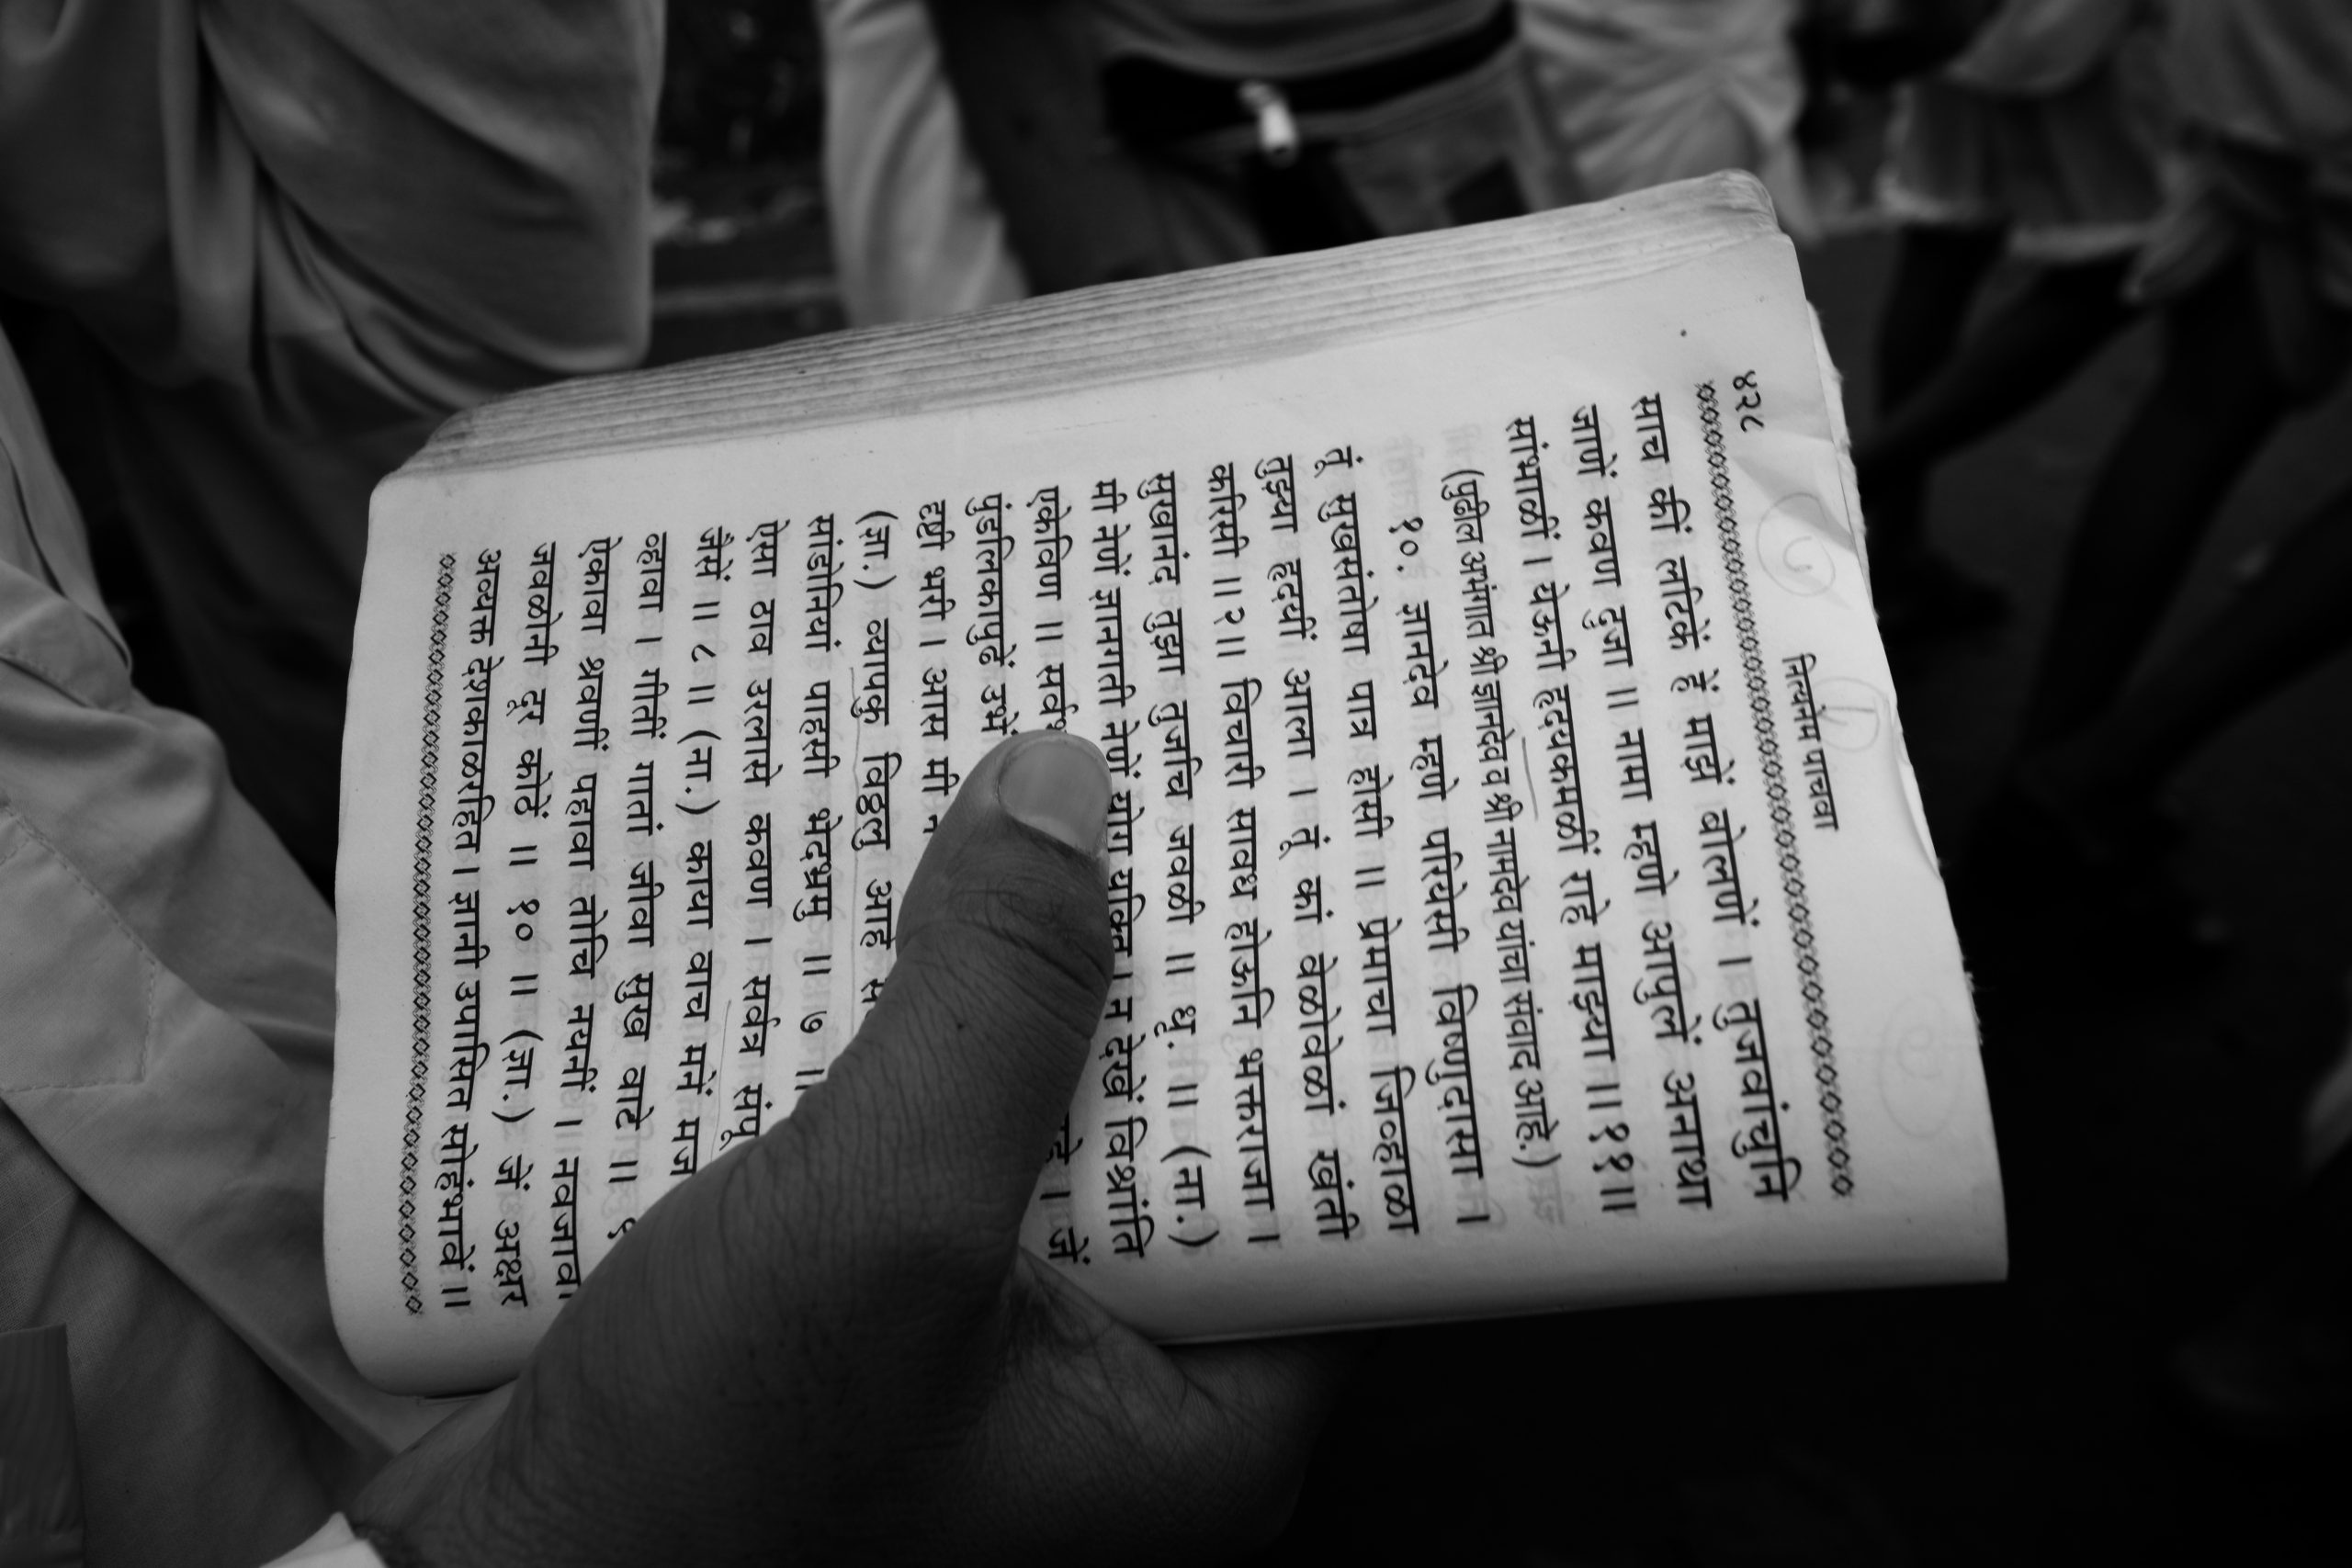 A religious book in hand